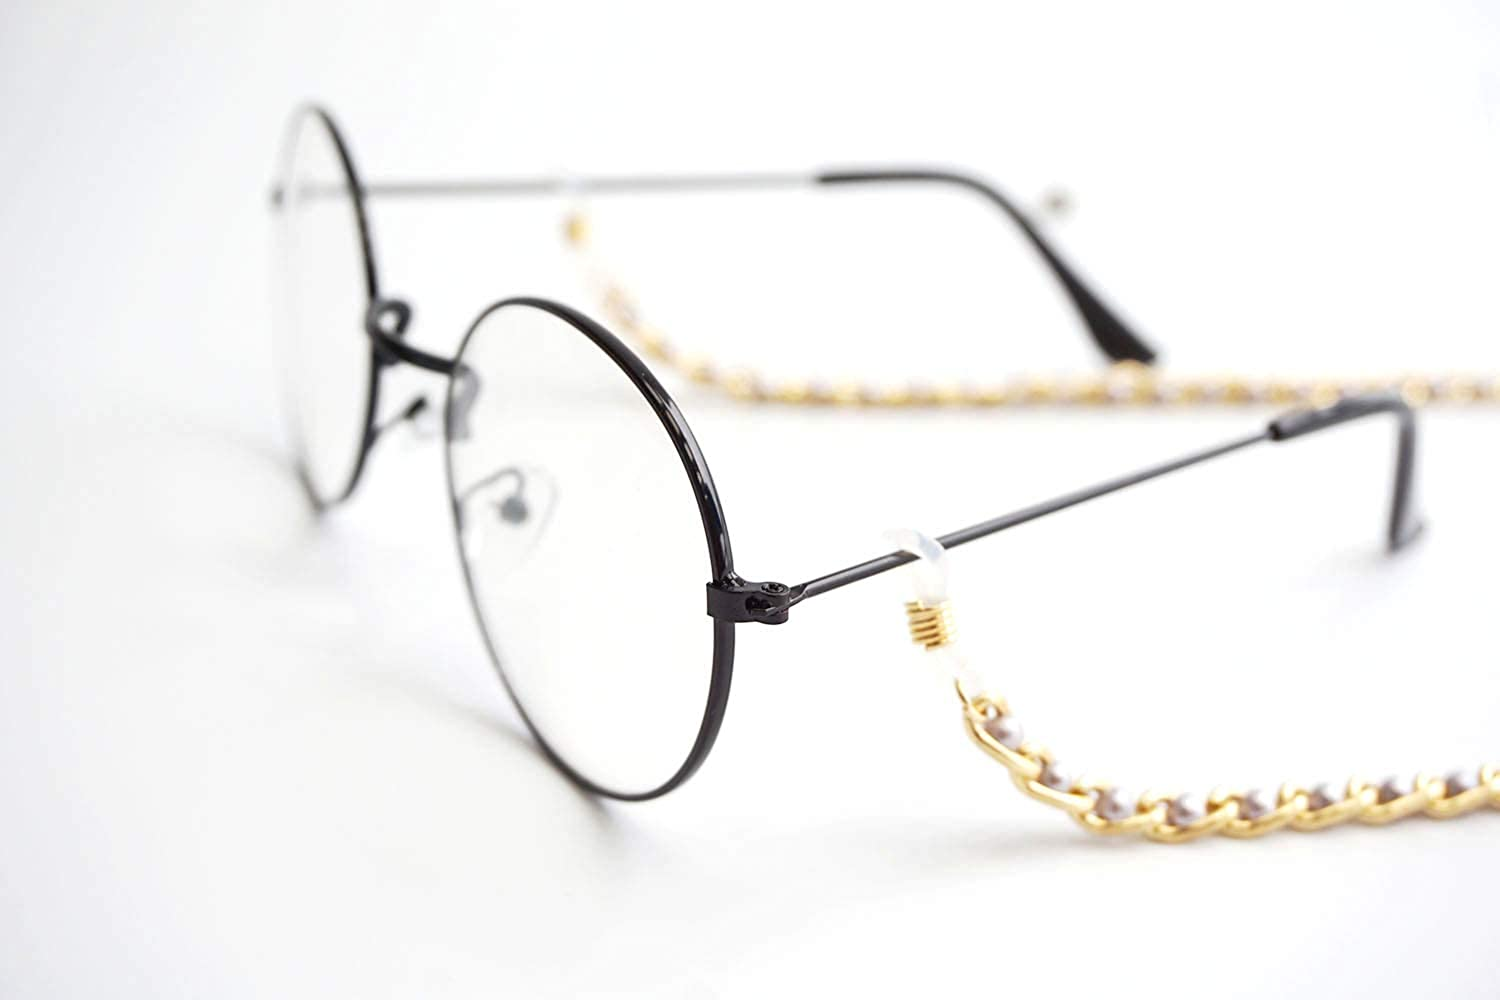 Gold Eyeglass Chain for Women Girls Reading Glasses Chain Sunglasses Chain Glasses Chain Chic and Function. Pearl Maillechain